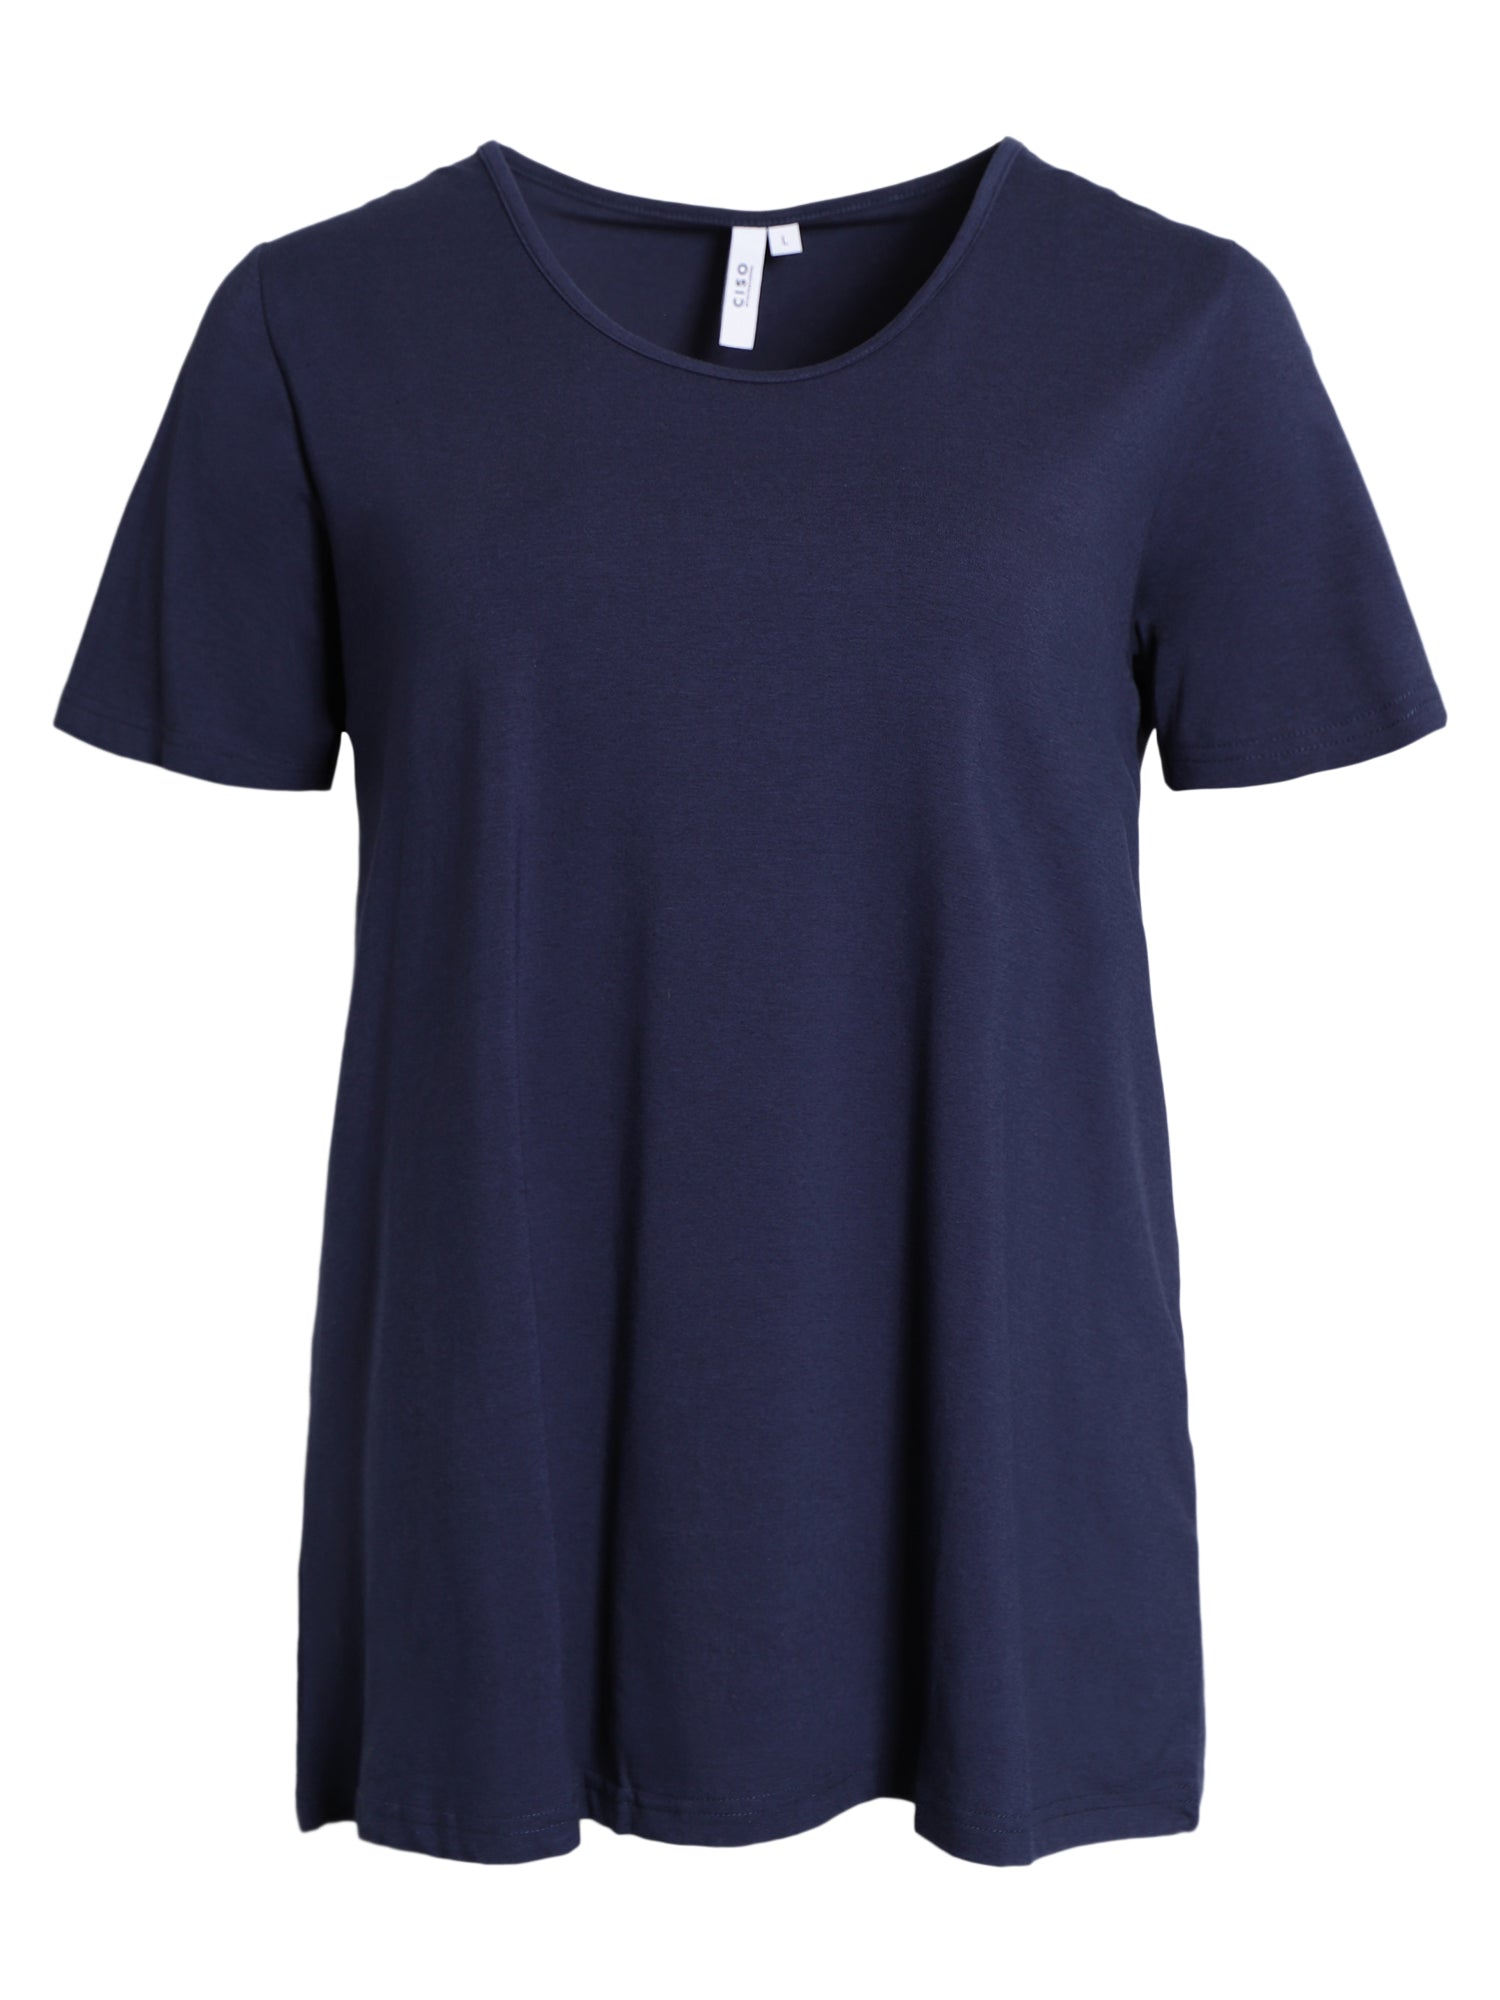 Image of   Basis T-shirt i A-facon med korte ærmer - Navy